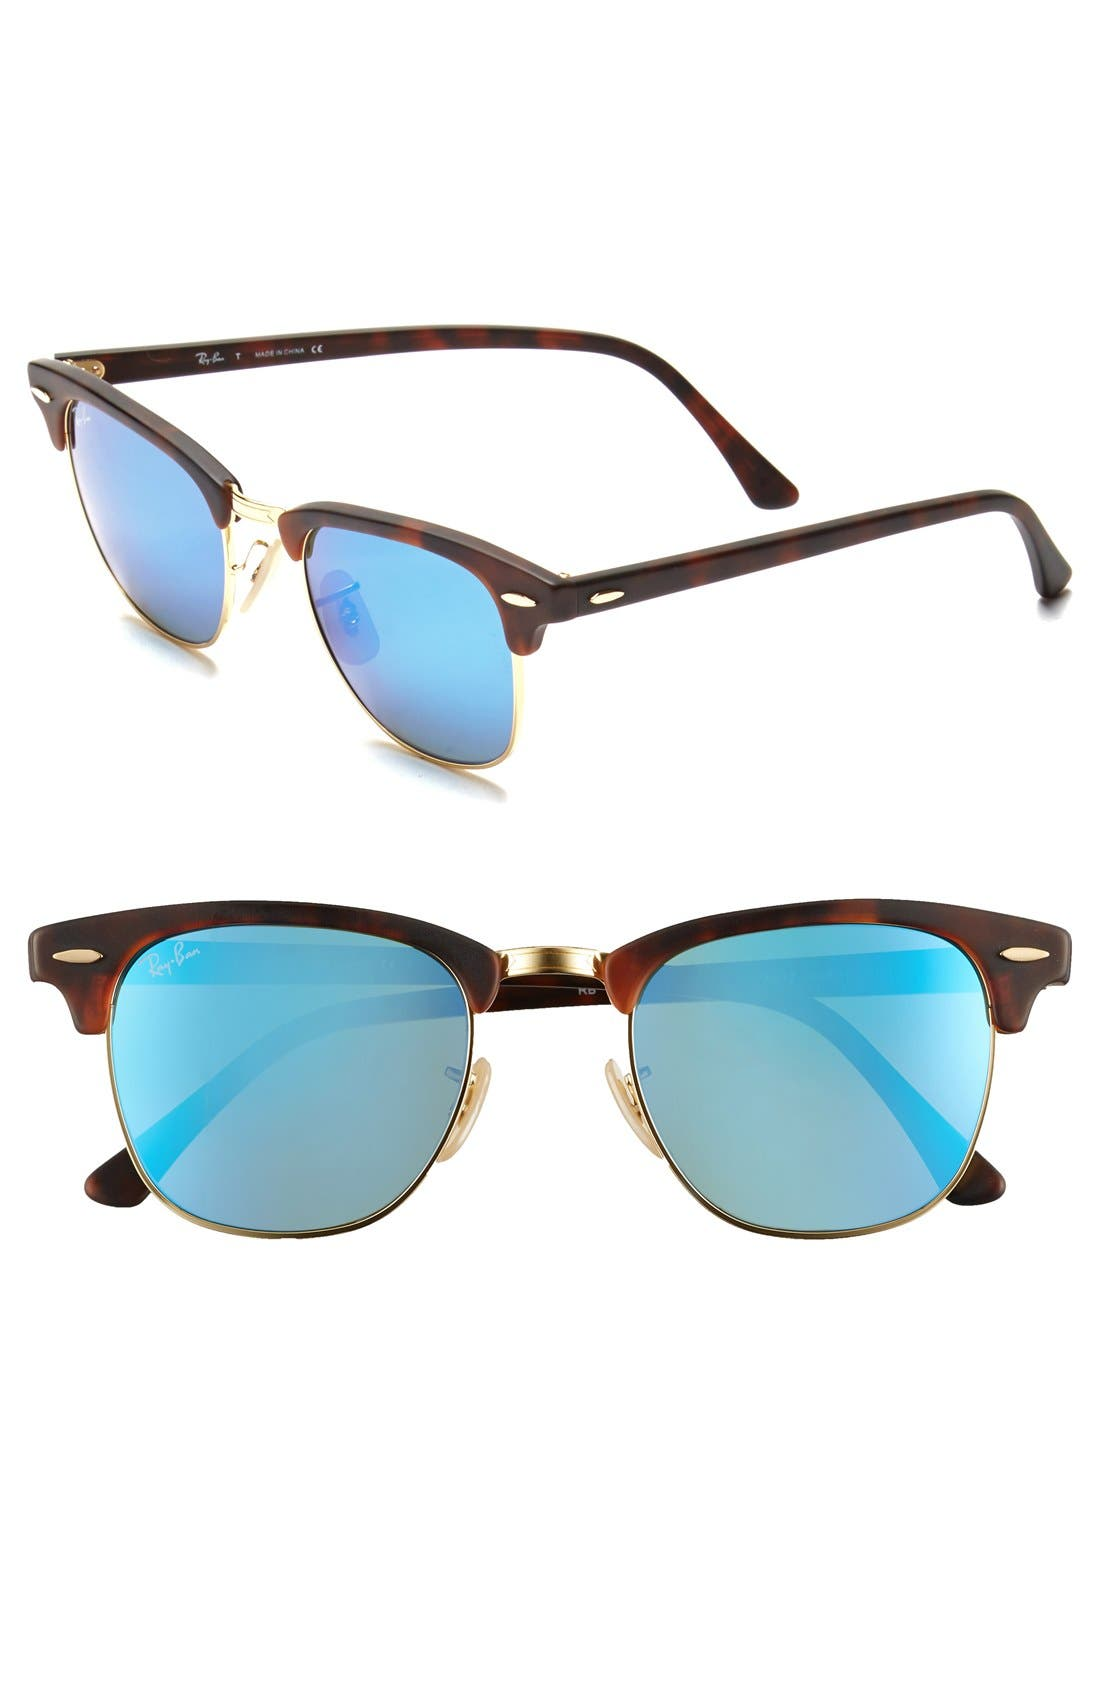 Flash Clubmaster 51mm Sunglasses,                             Main thumbnail 1, color,                             Tortoise/ Blue Mirror